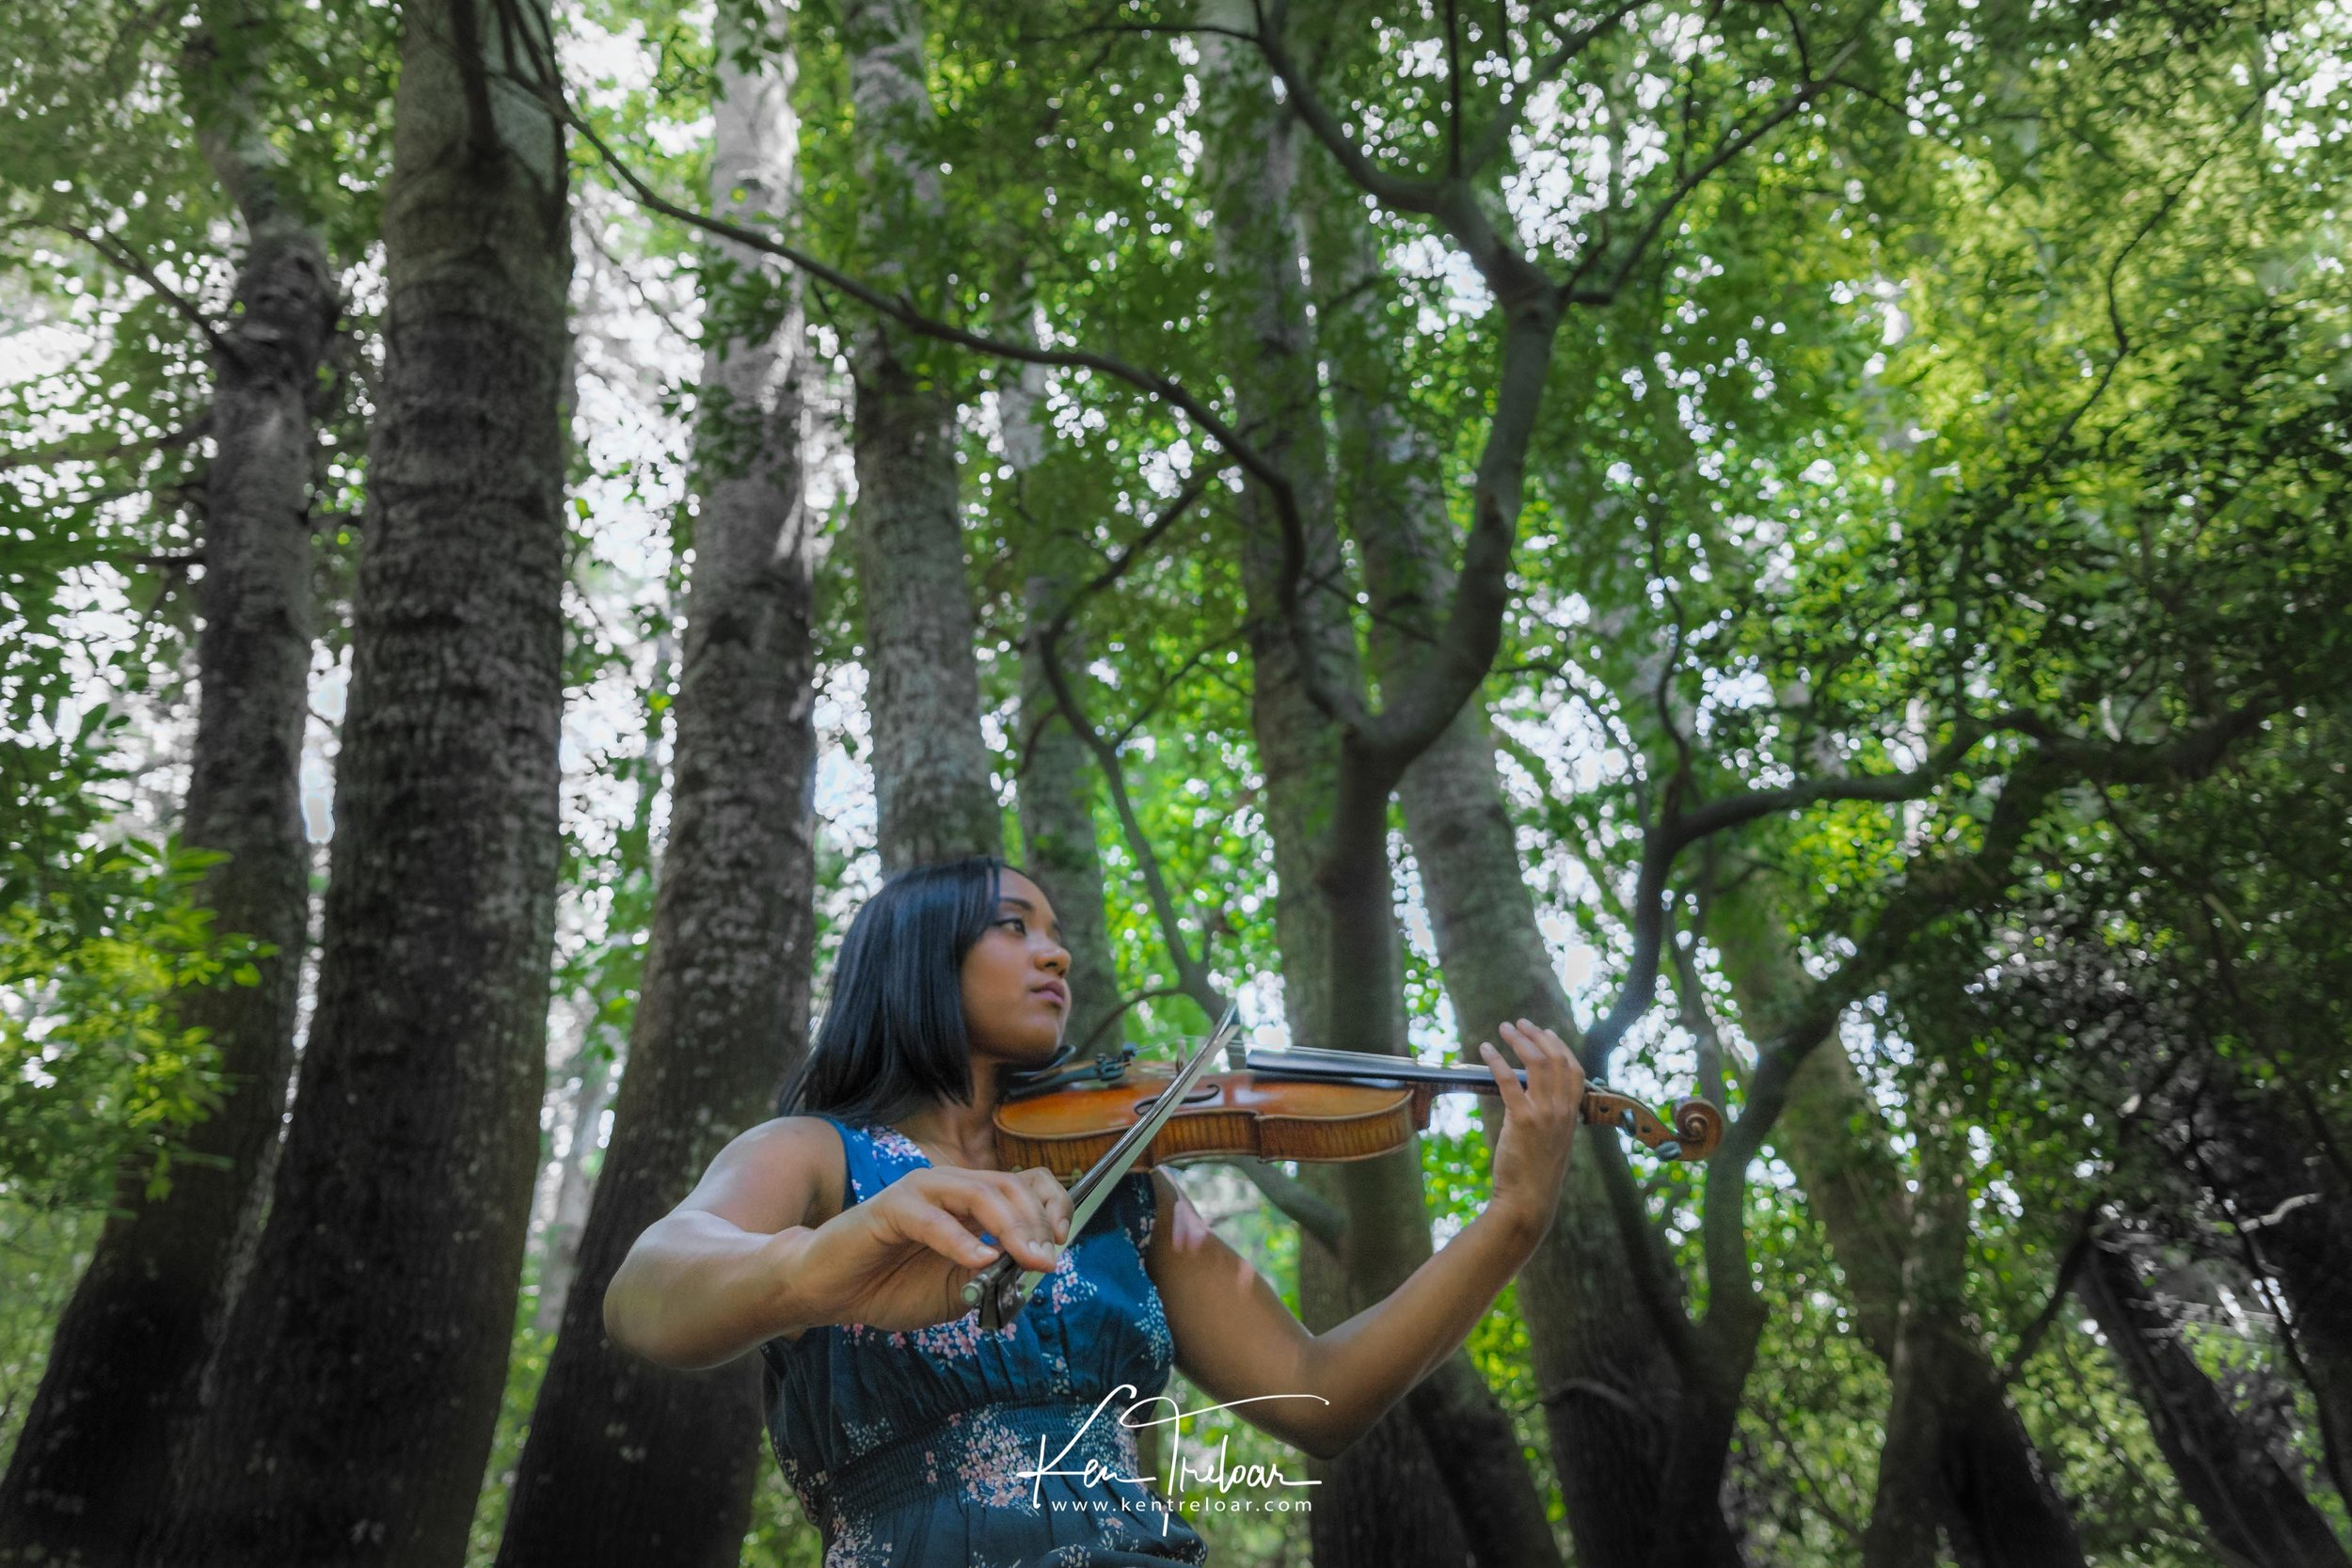 Ken Treloar Photography - Dec 2018 - Violin Woodland Forest Natural Light Portrait Photography - Cape Town.jpg